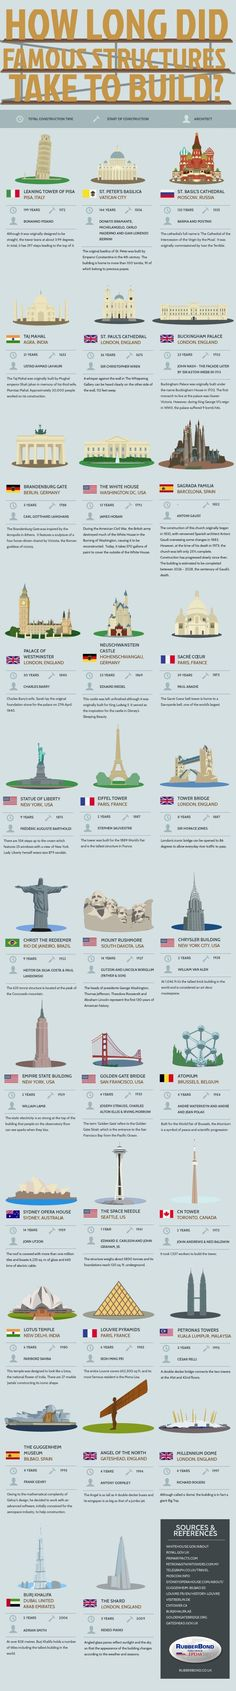 How Long Did Famous Structures Take to Build? Infographic